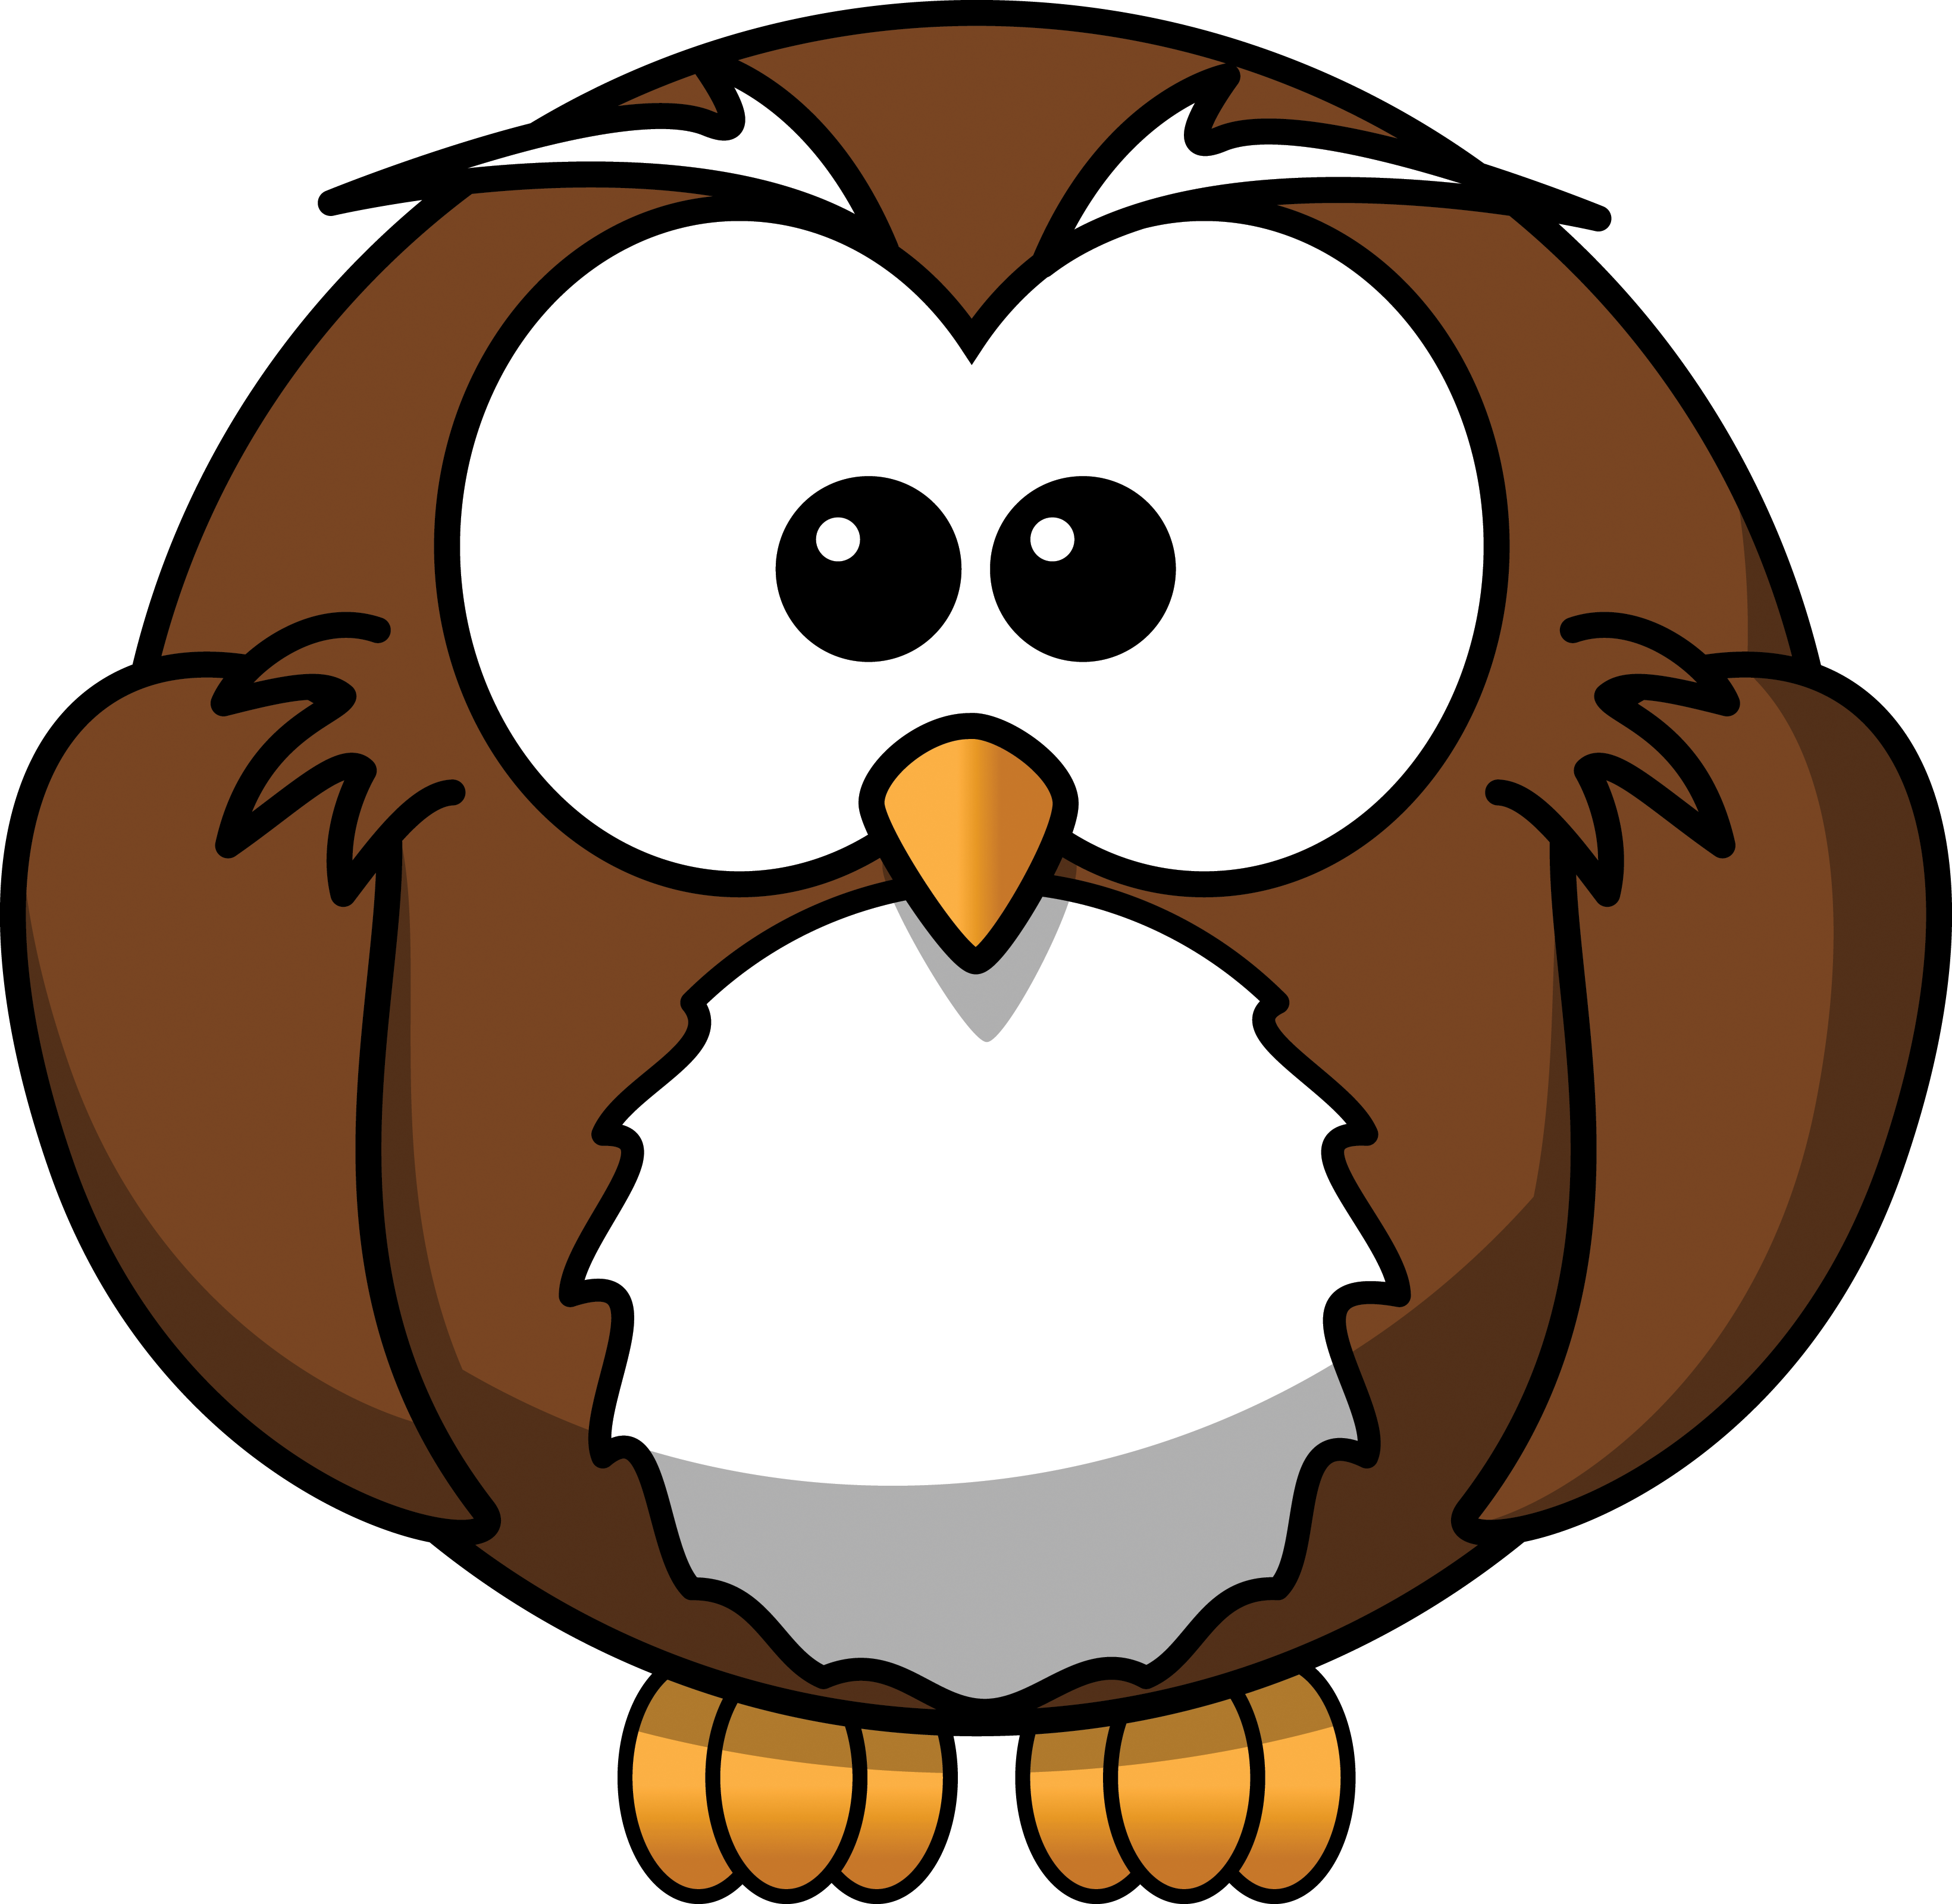 Free Free Png Clipart, Download Free Clip Art, Free Clip Art.